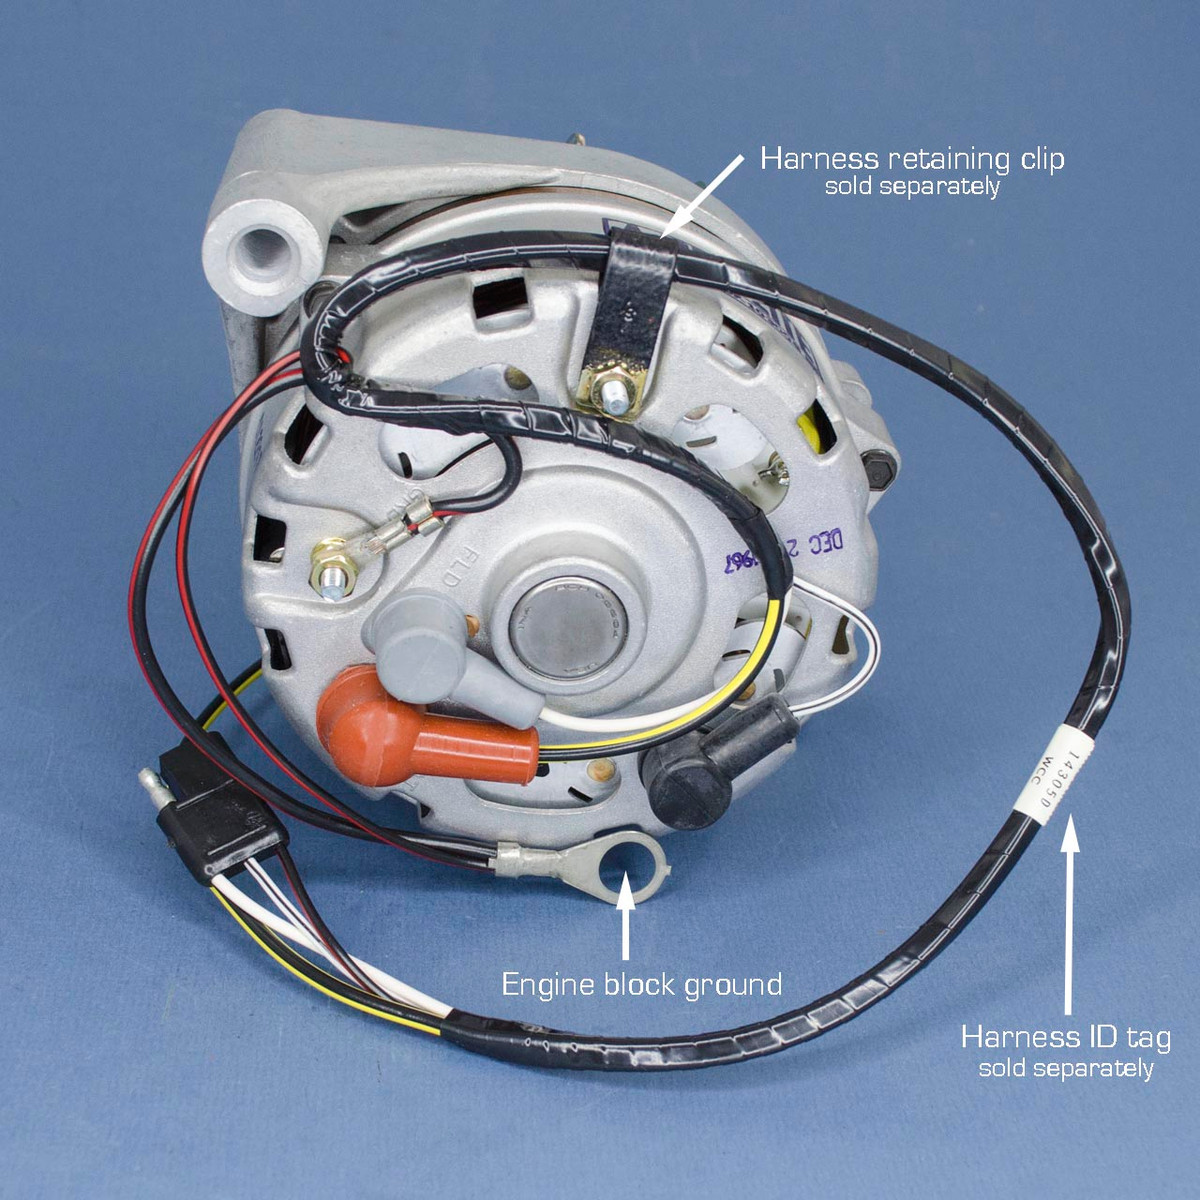 1968 Mustang Alternator Wiring - Wiring Diagram Replace editor-expect -  editor-expect.miramontiseo.it   Ford Mustang Alternator Wiring      editor-expect.miramontiseo.it